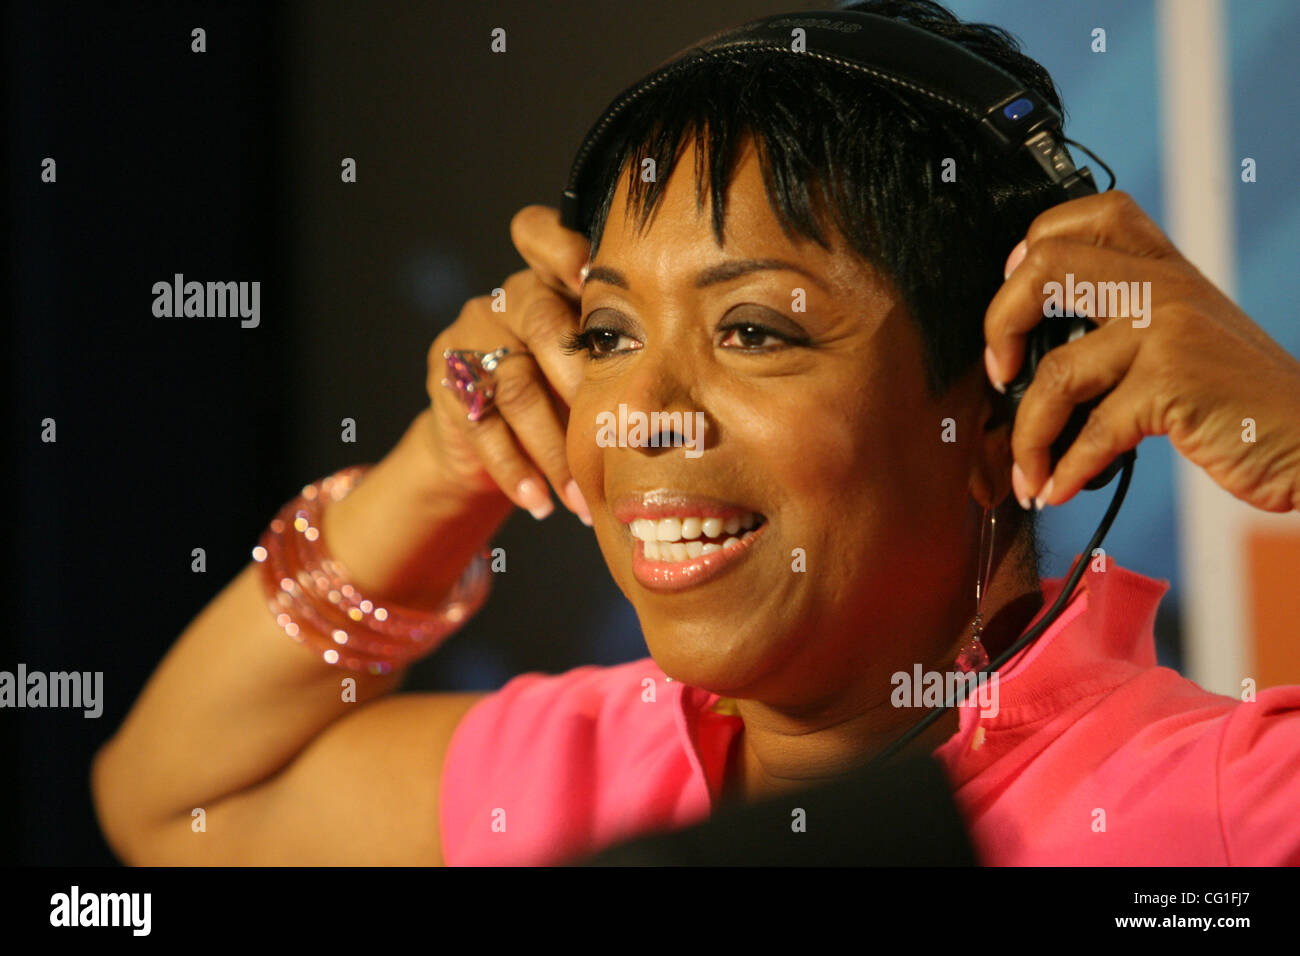 shirley strawberry the steve harvey morning show that airs on wbls 1075 in new york studios today aug 13 2007 photo credit mariela lombard zuma